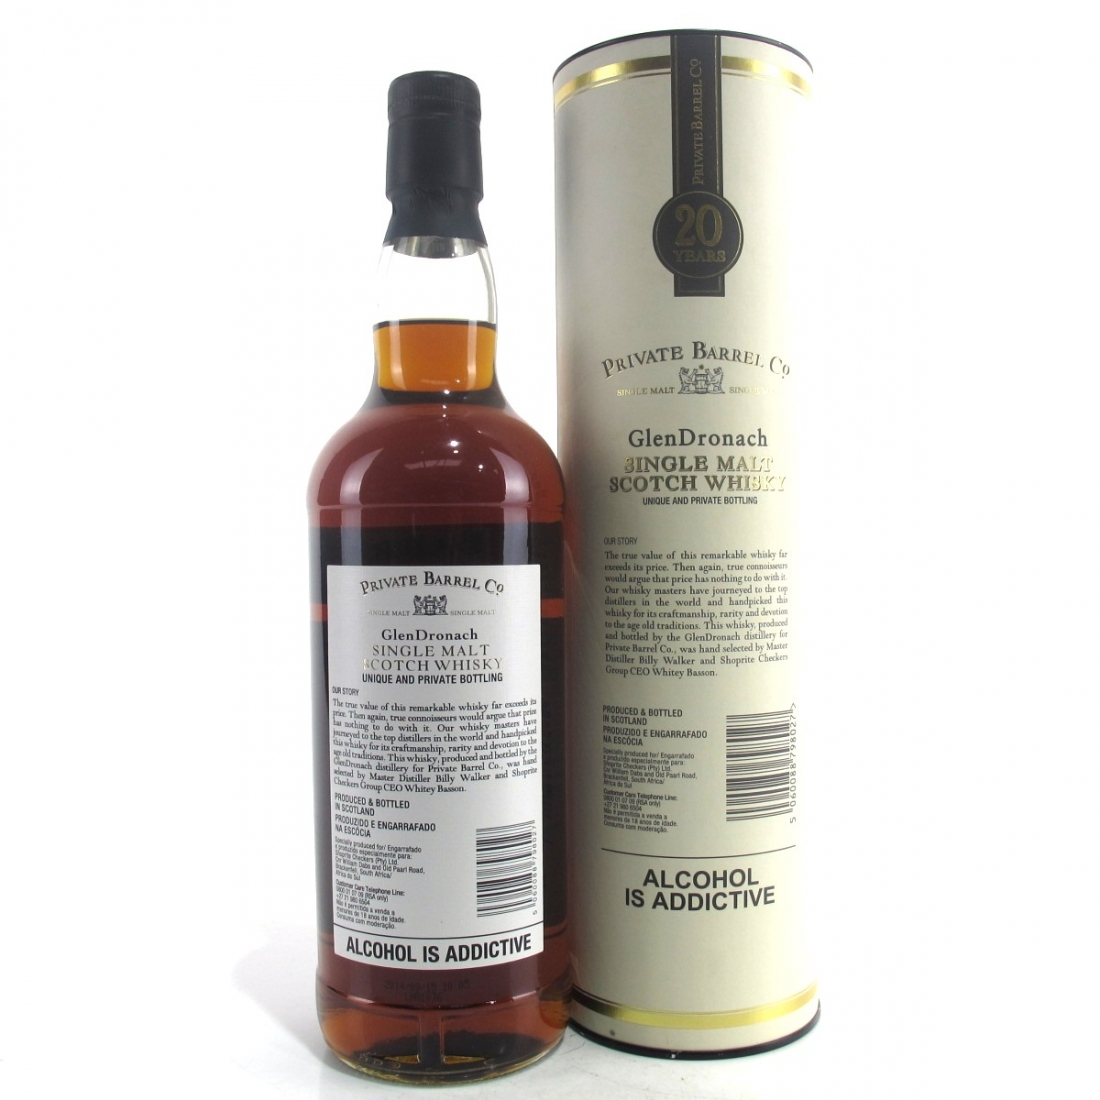 Glendronach 20 Year Old Private Barrel Co 75cl / South African Import